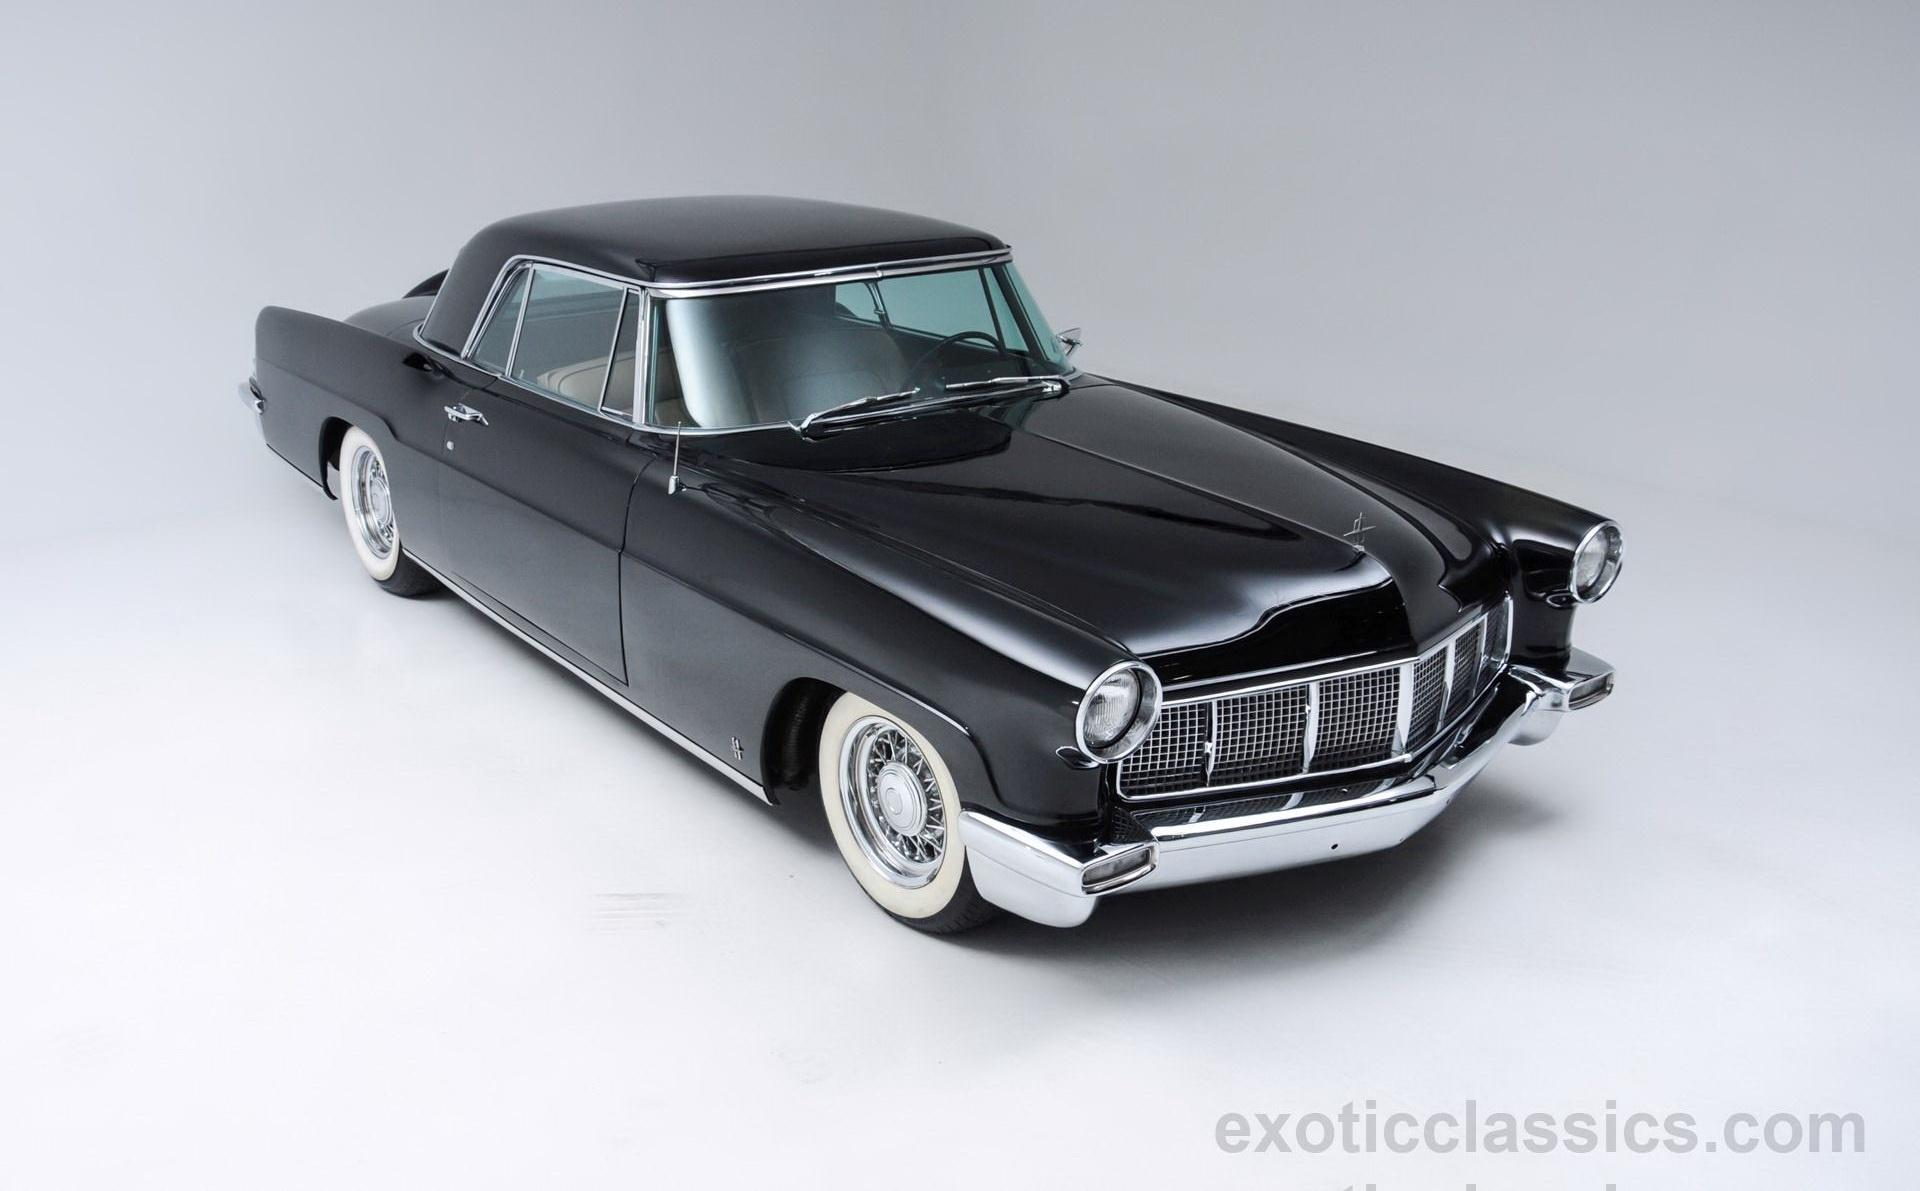 1956 Lincoln Continental Mark II - Exotic and Classic Car ...